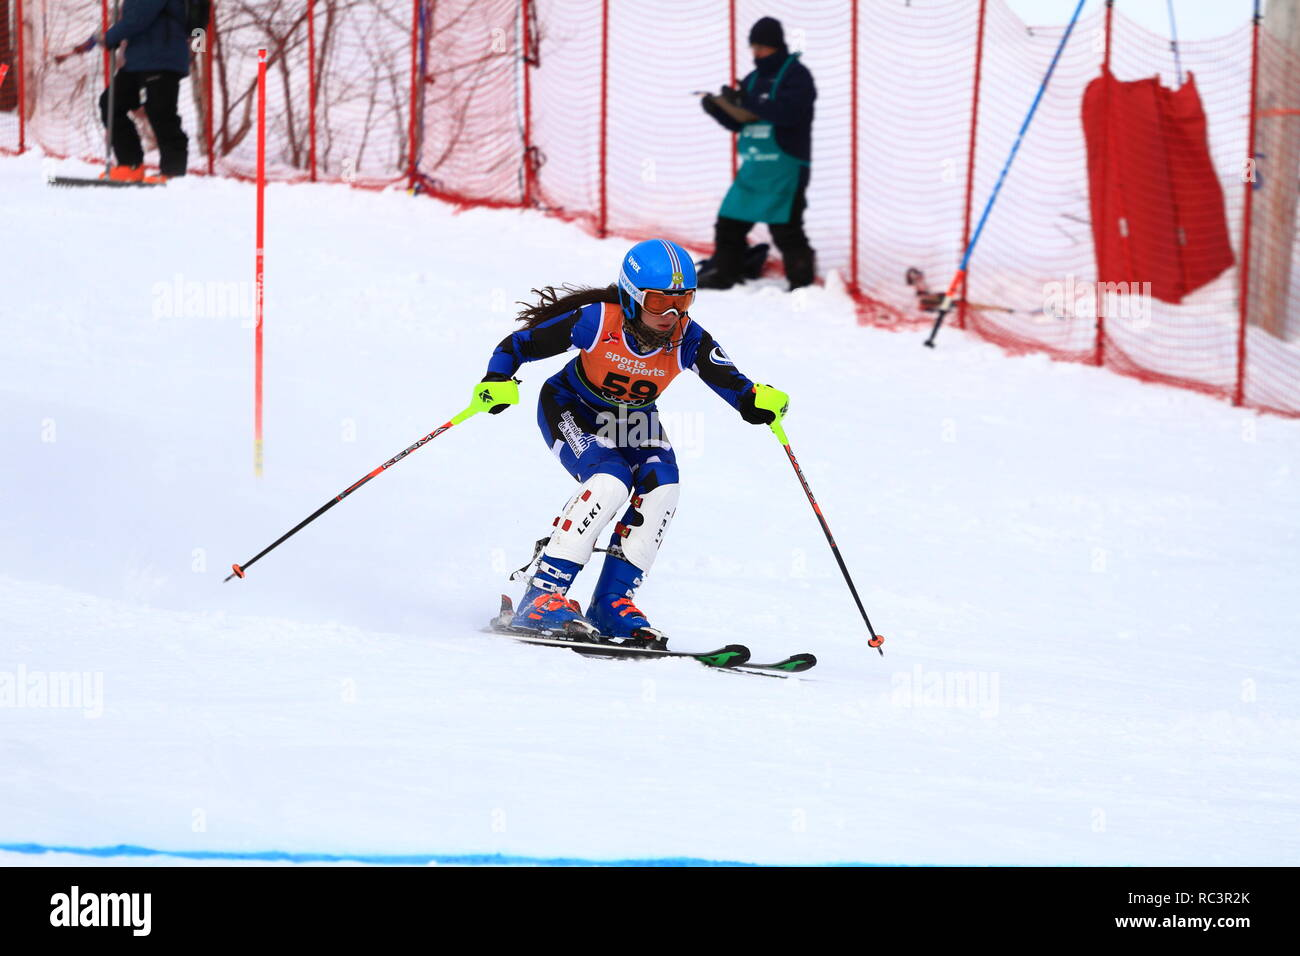 Quebec, Canada. 13th Jan 2019. Anne-Sophie Beauchemin of Canada competes in the Super Serie Sports Experts Ladies slalom race held at Val Saint-Come Credit: richard prudhomme/Alamy Live News - Stock Image